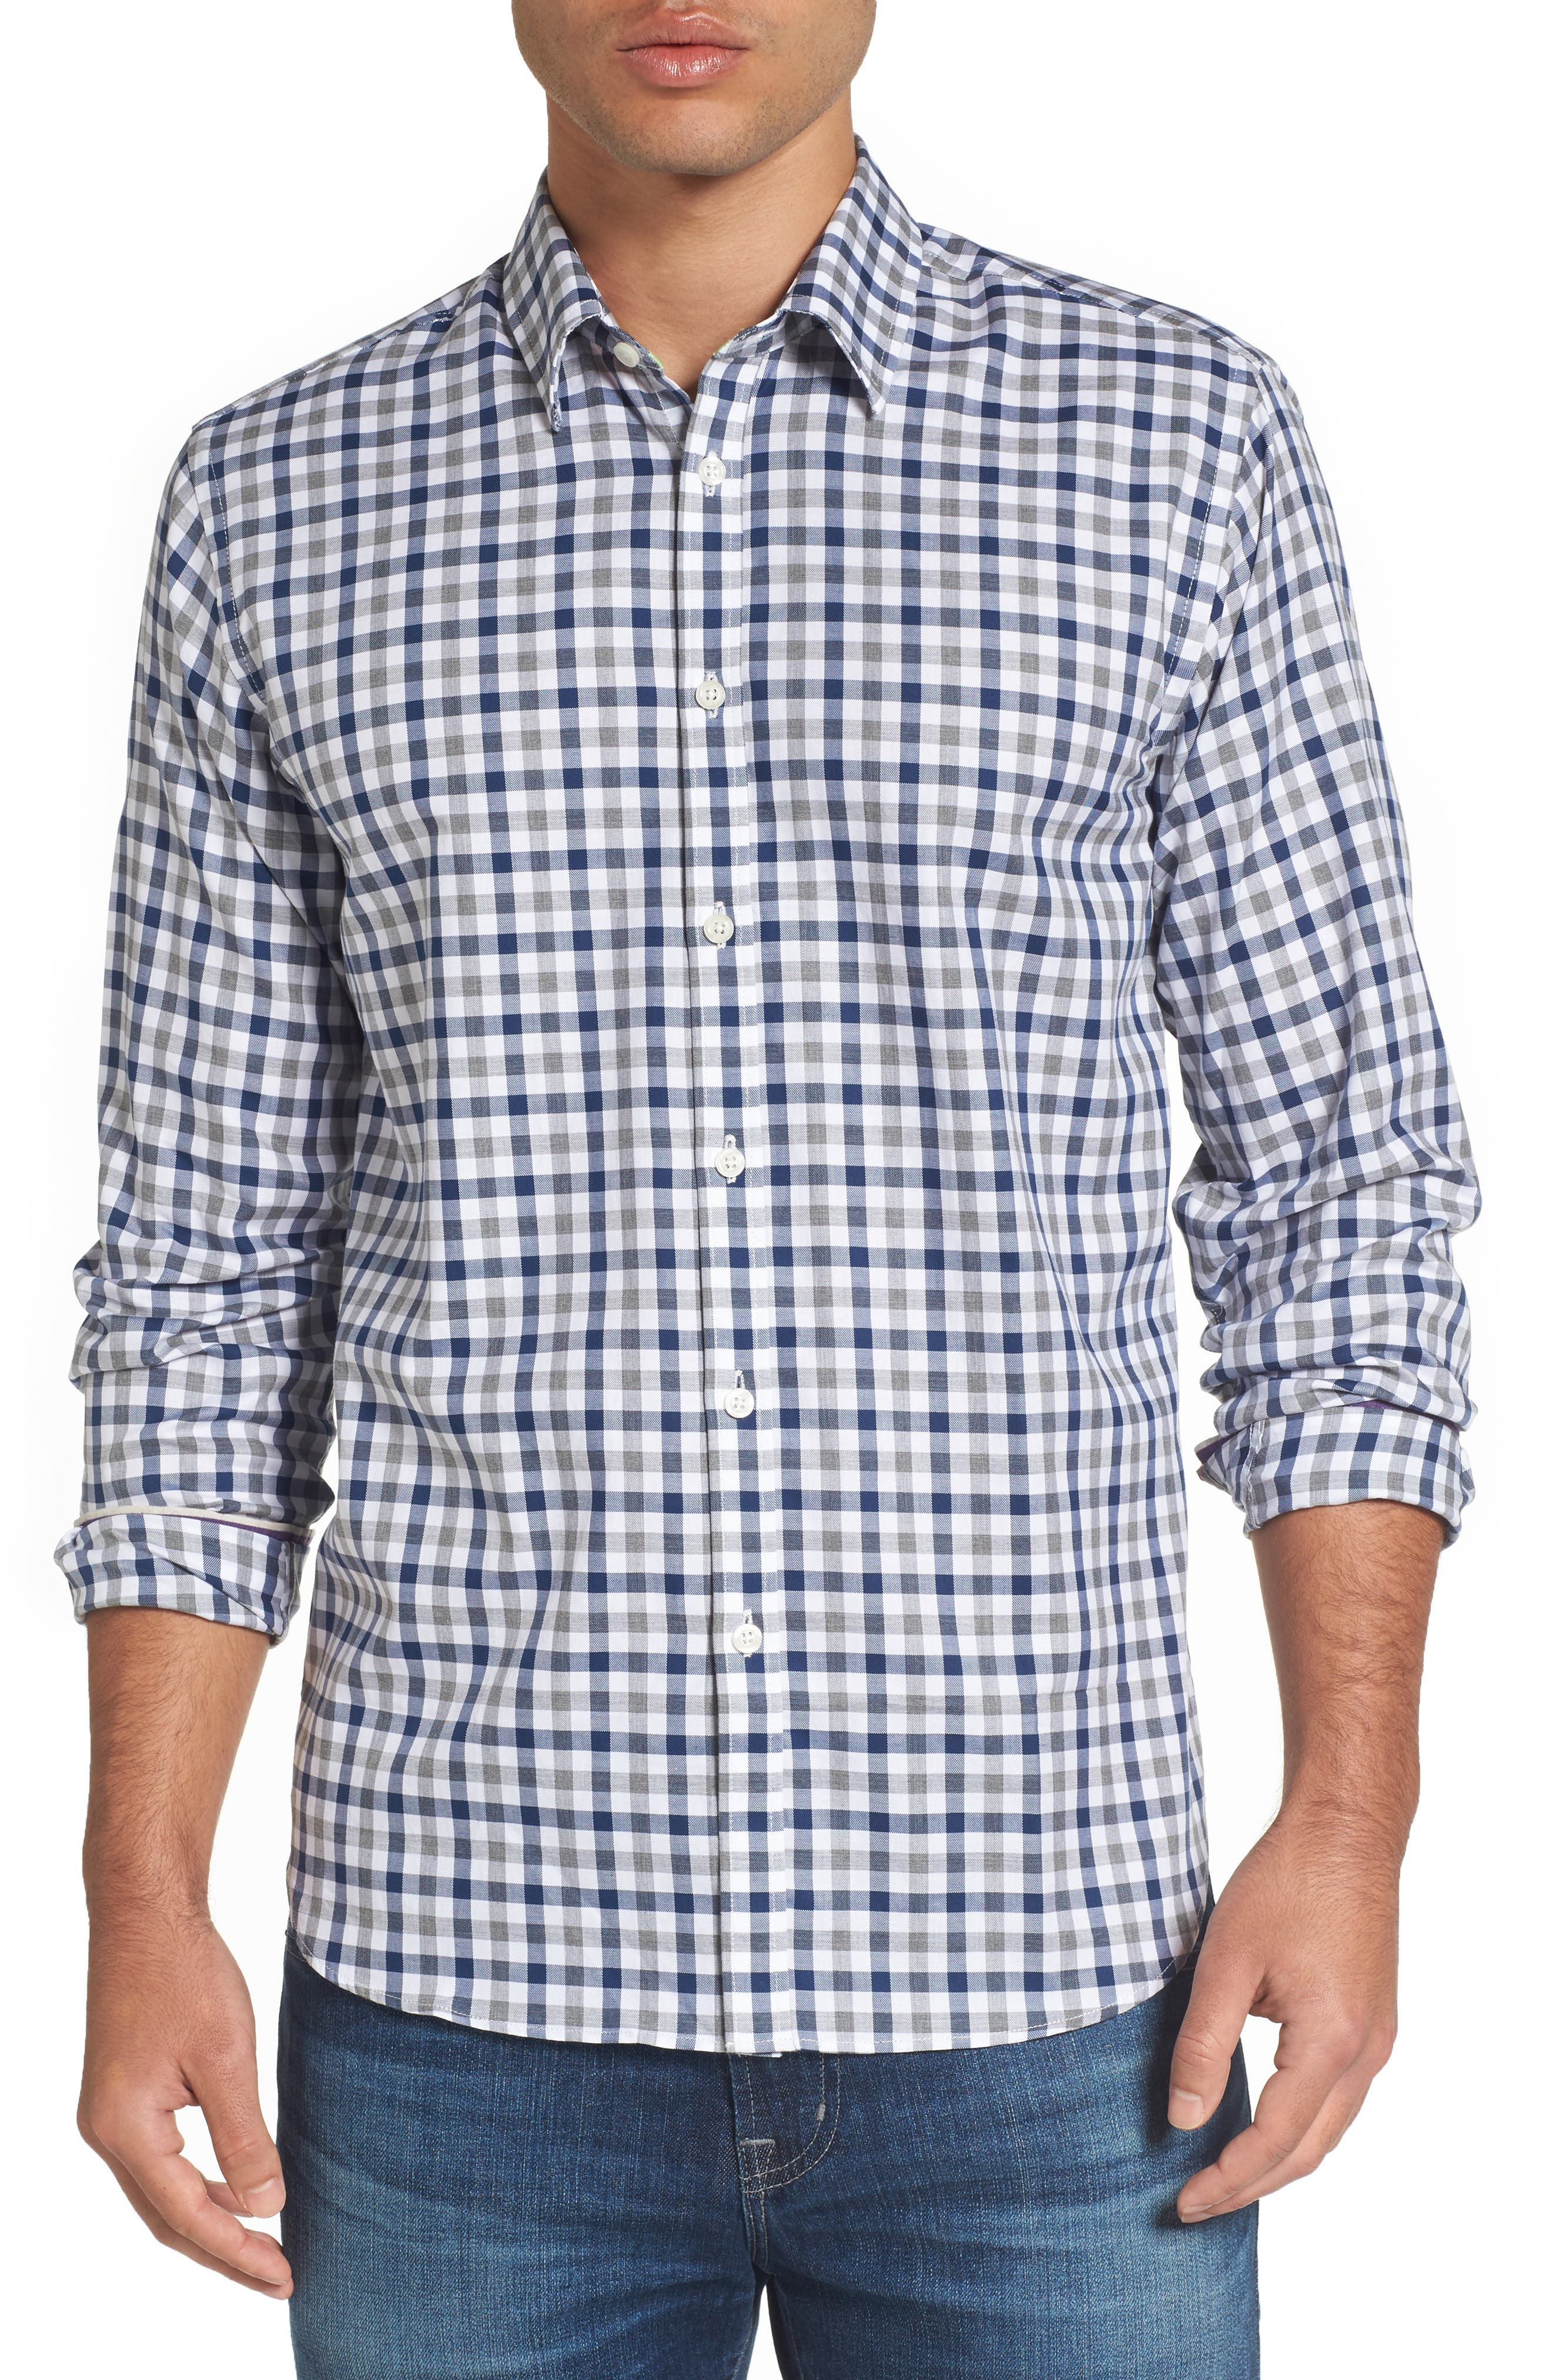 Jeremy Argyle Fitted Check Sport Shirt